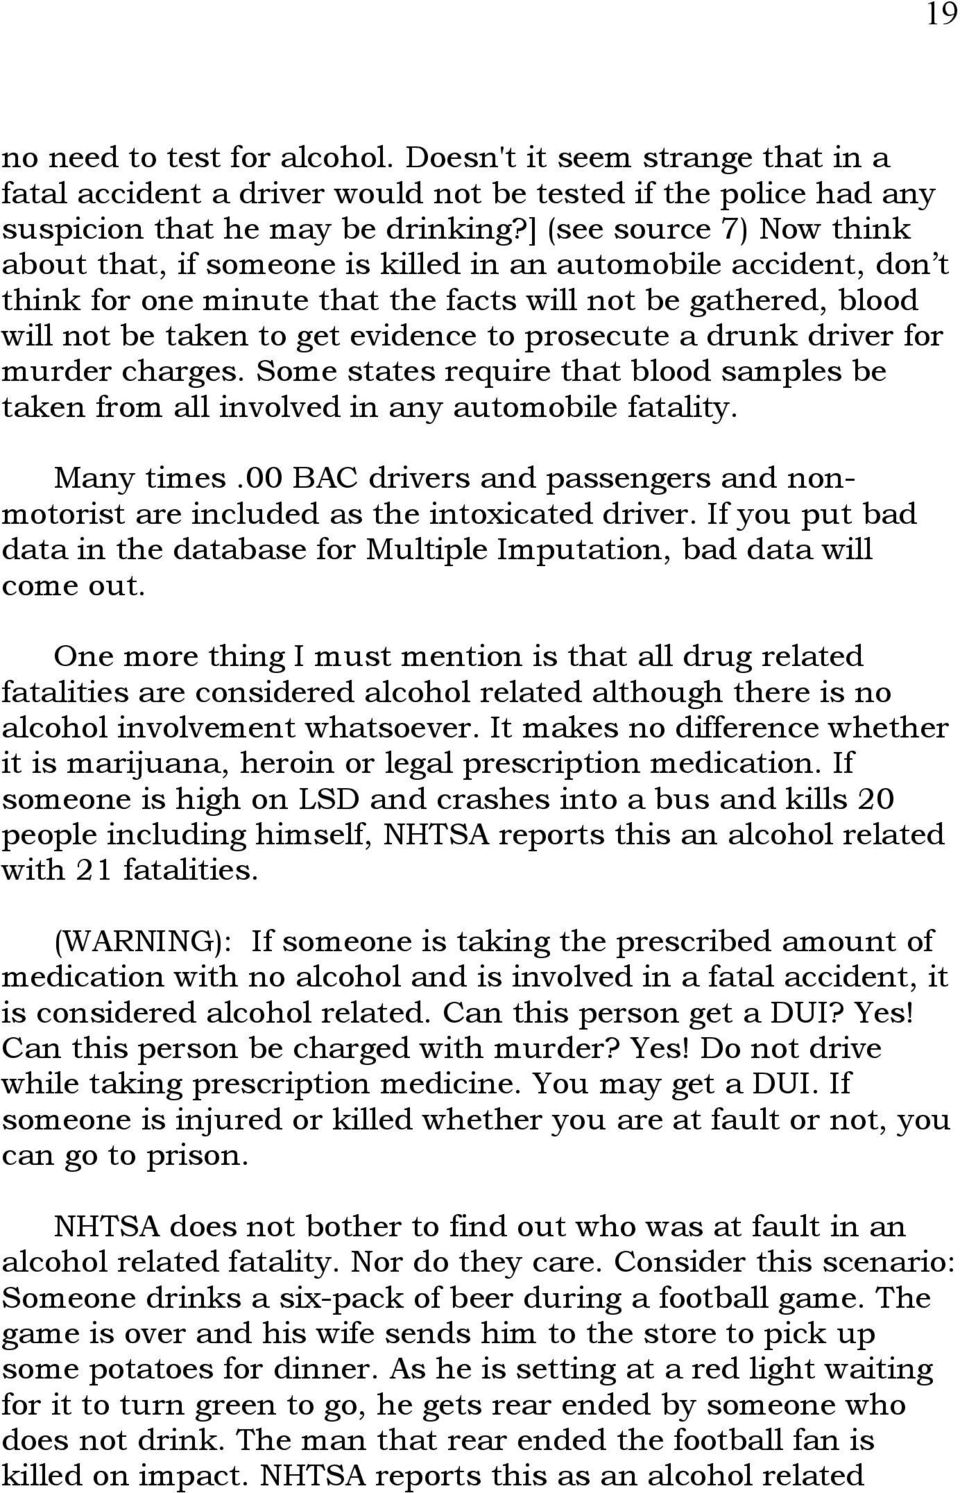 prosecute a drunk driver for murder charges. Some states require that blood samples be taken from all involved in any automobile fatality. Many times.